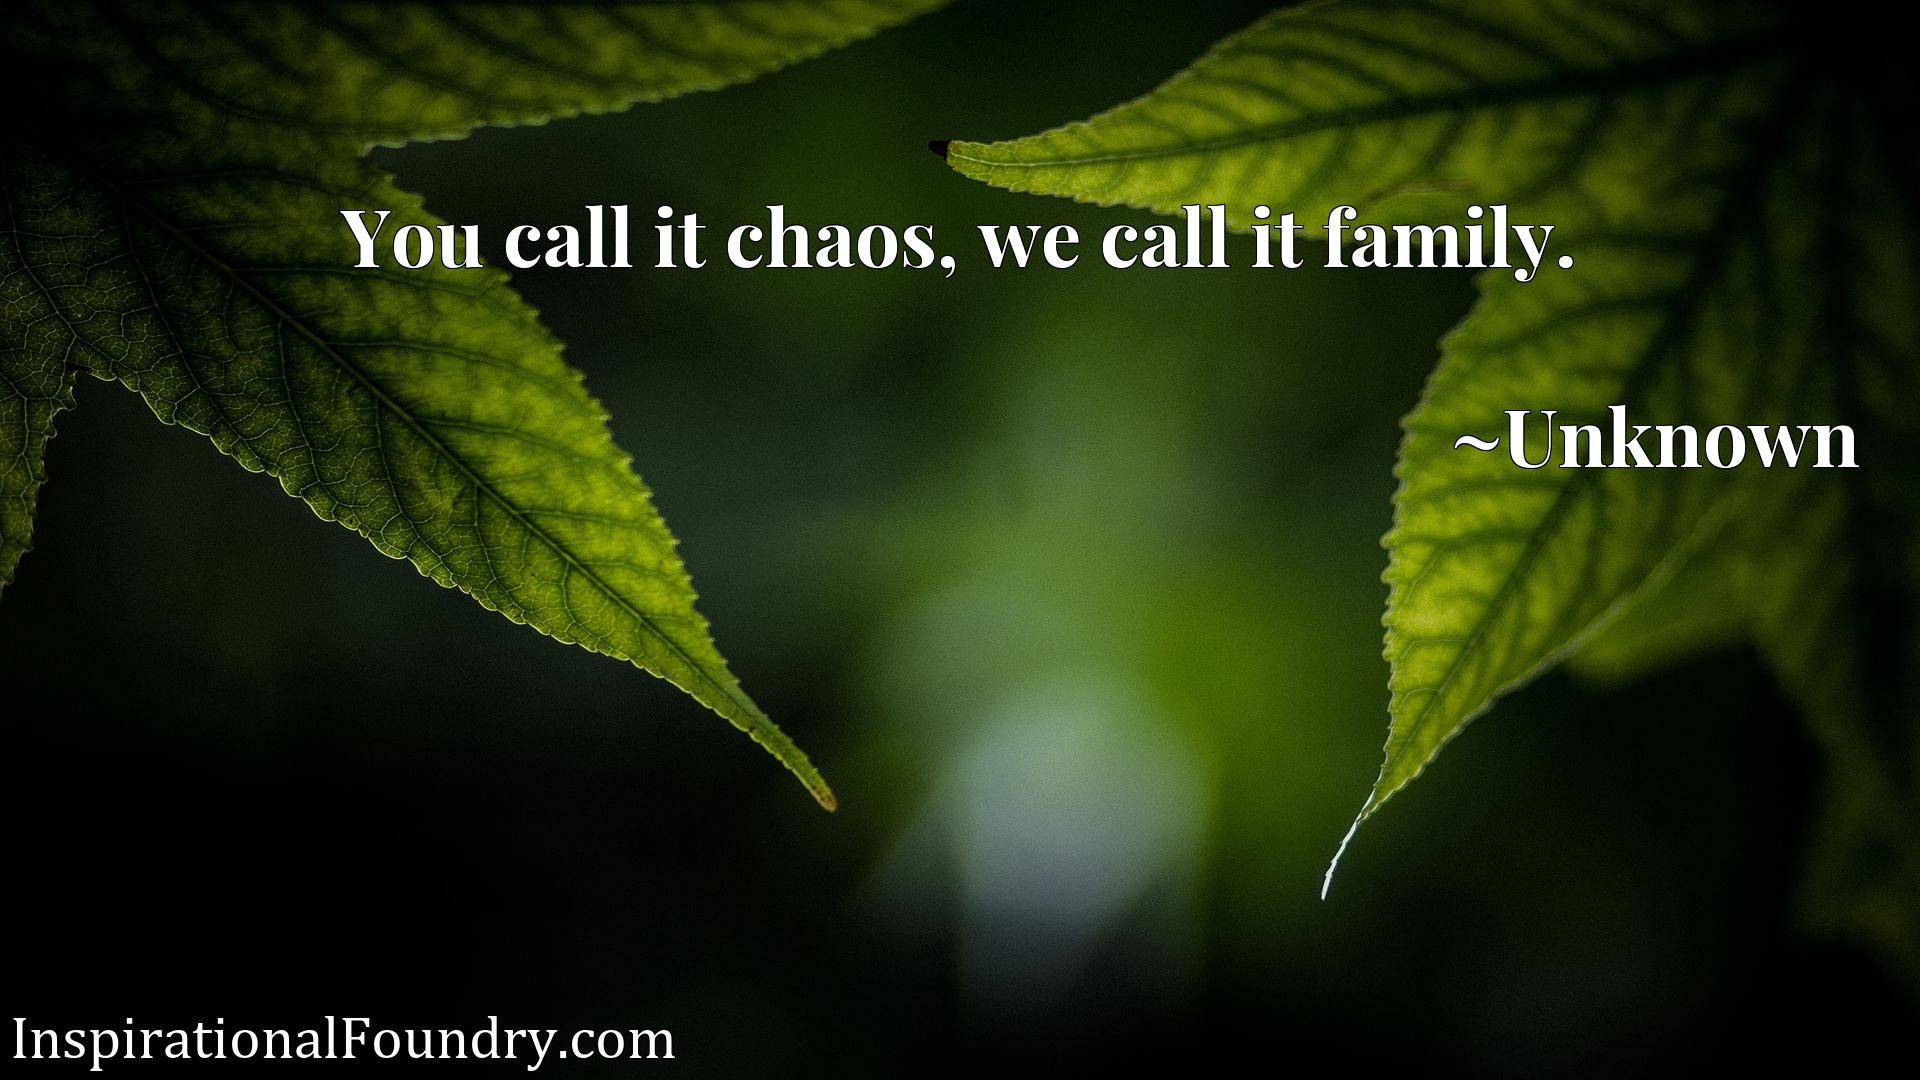 You call it chaos, we call it family.